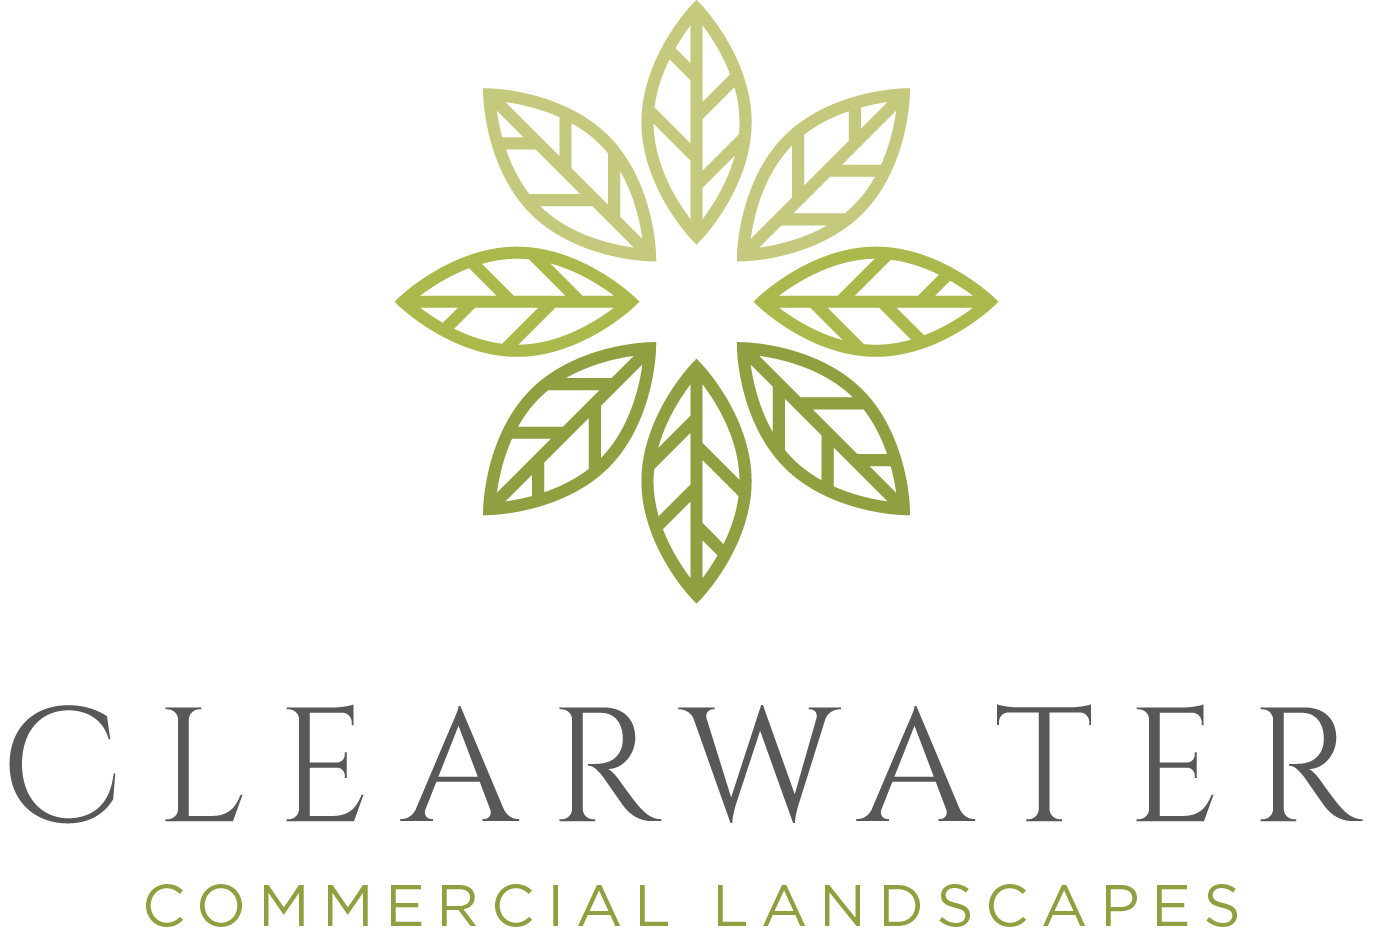 Clearwater Commercial Landscapes